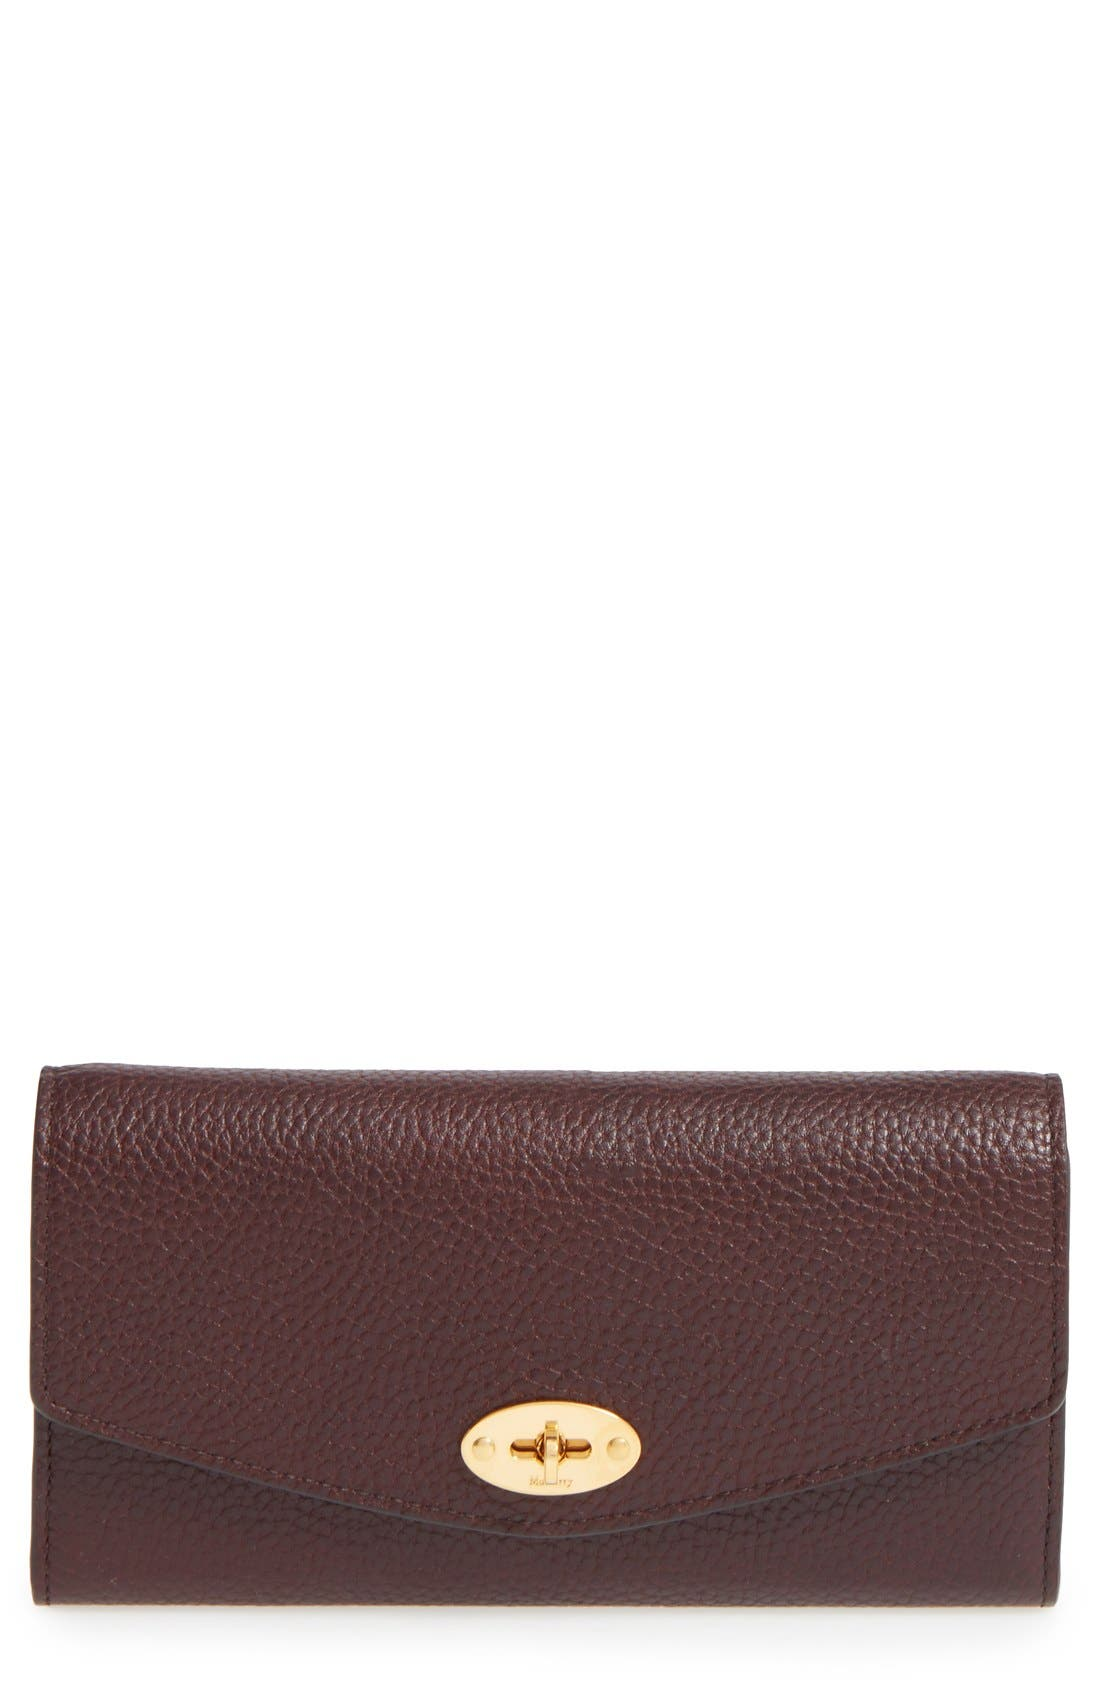 'Postman's Lock' Leather Wallet,                             Main thumbnail 1, color,                             Oxblood